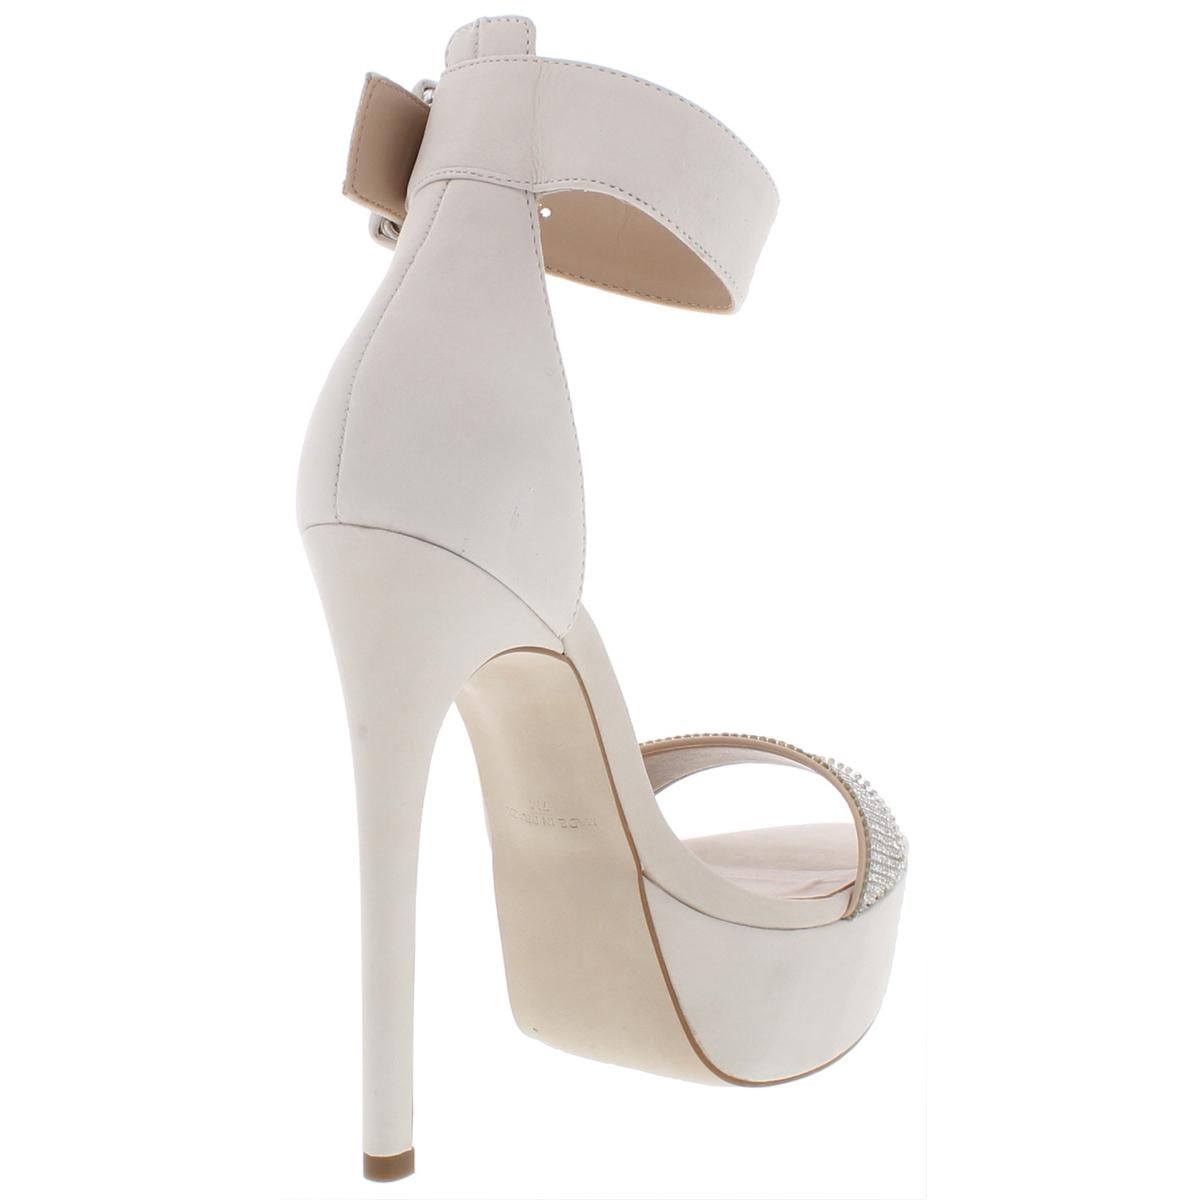 Steve-Madden-Womens-Sultry-Suede-Stiletto-Platform-Heels-Shoes-BHFO-7084 thumbnail 8